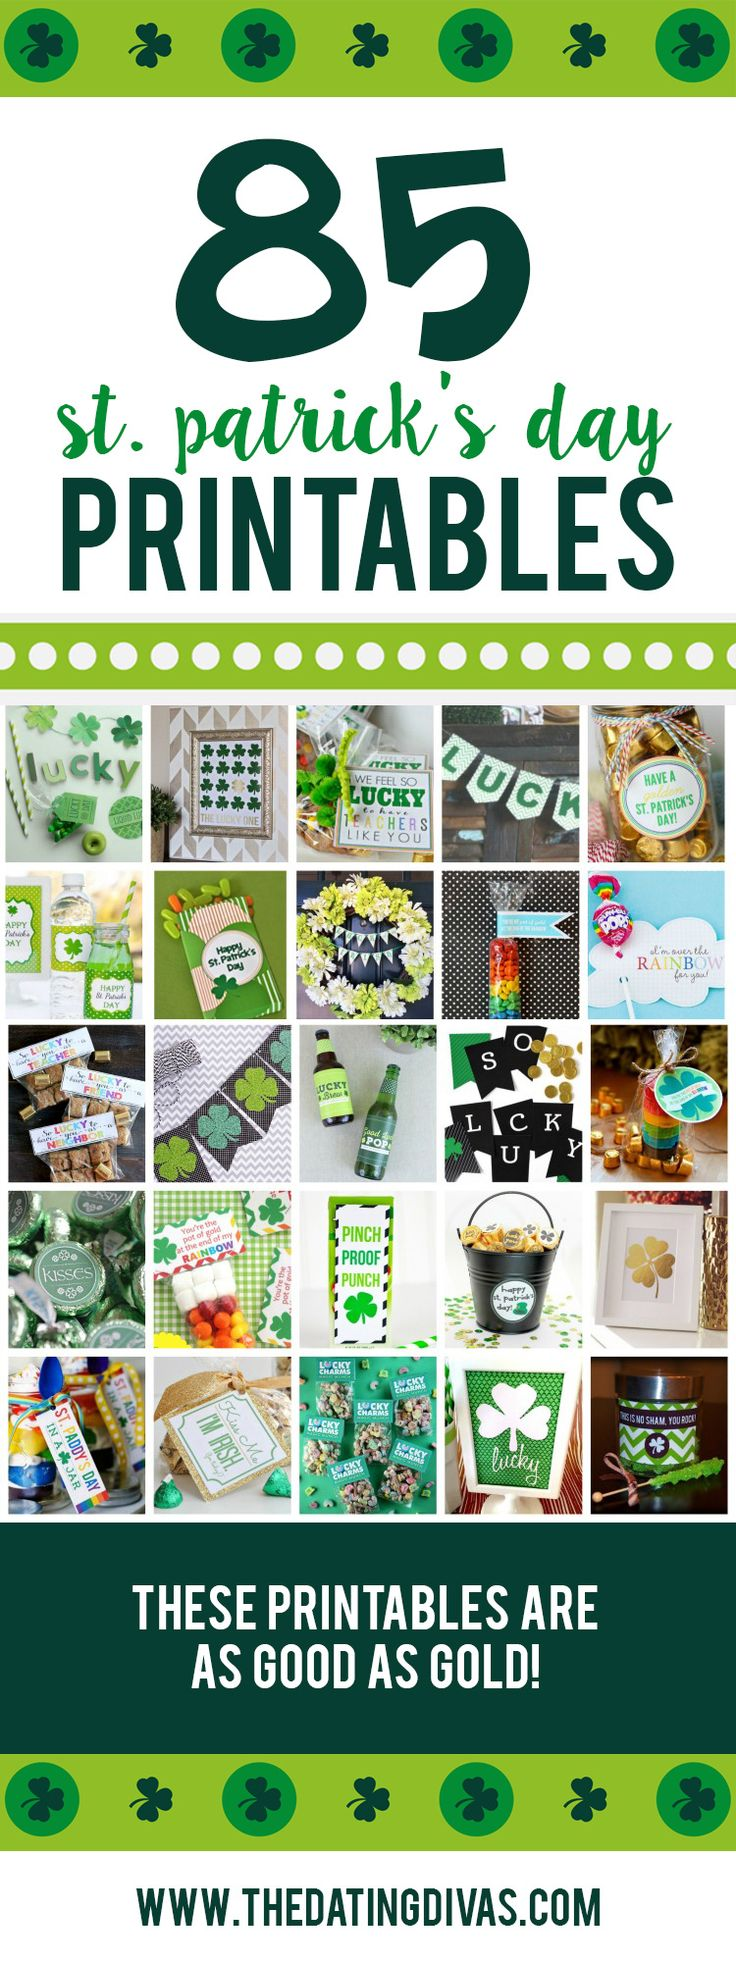 St. Patrick's Day printables! There are SO many great ideas here! LOVE them! www.TheDatingDivas.com